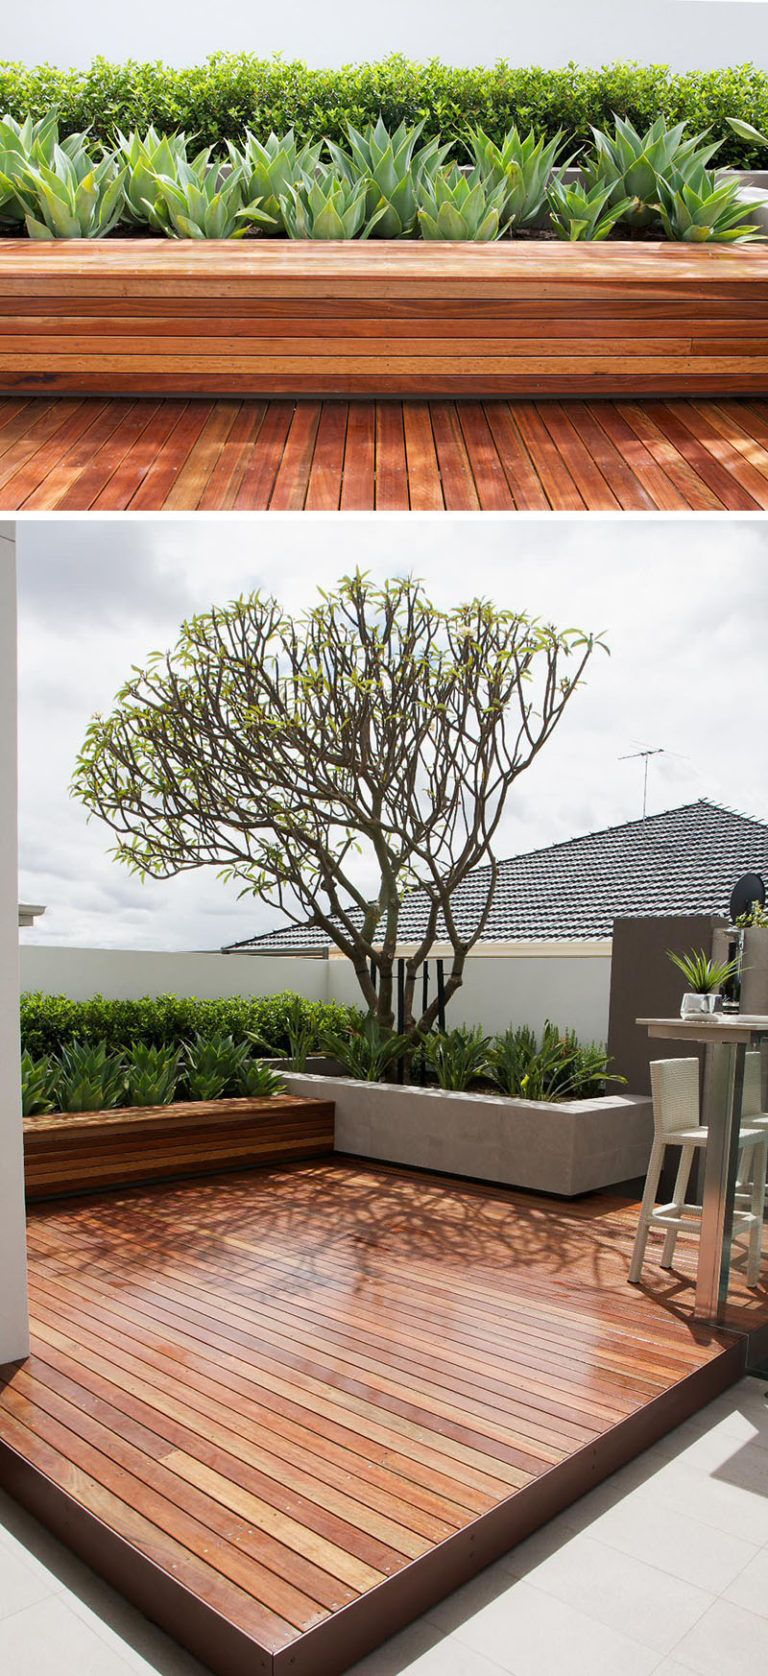 This Gives Me An Idea To Save Money And Still Get The Look Of A Deck  Throw  Concrete Slab And Build Narrow Wooden Bench Along The Side Of The Above  Ground ...